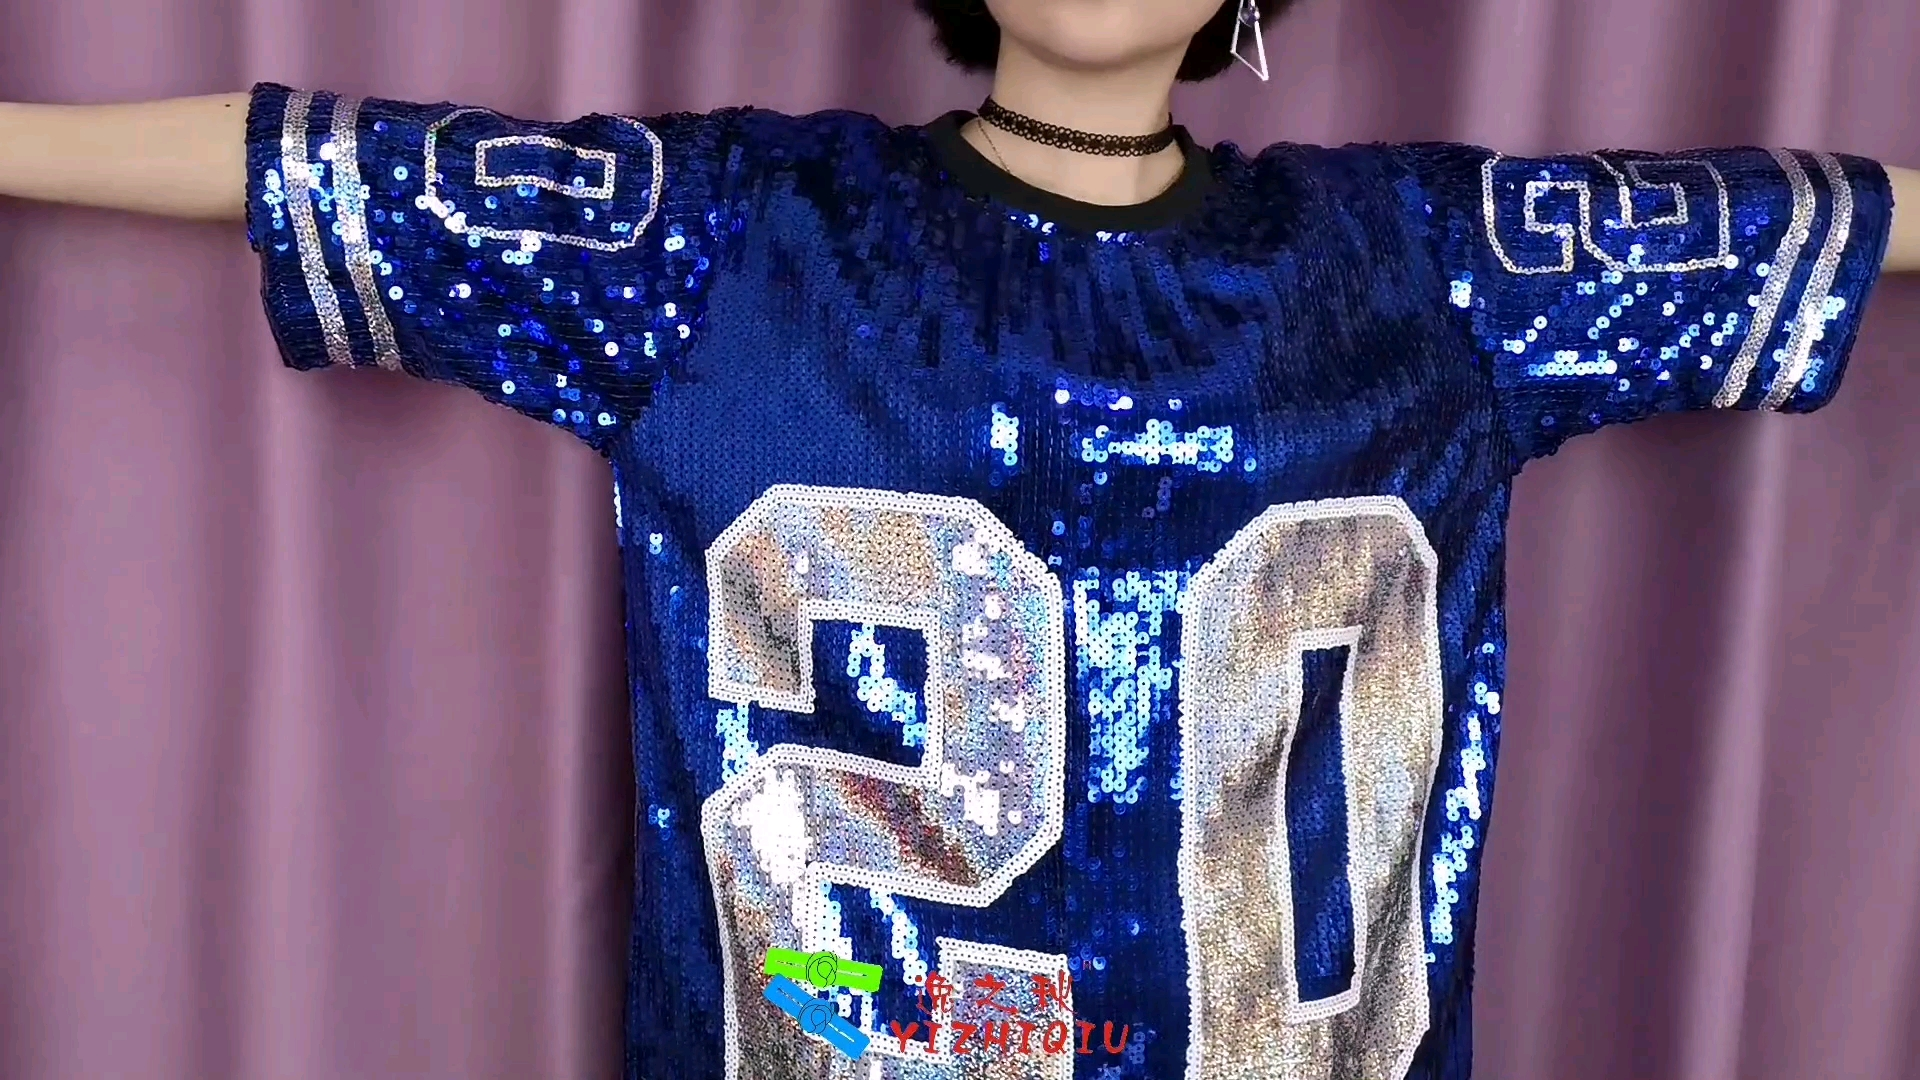 YIZHIQIU blue 20 sequin jersey one size fit all dresses sequins